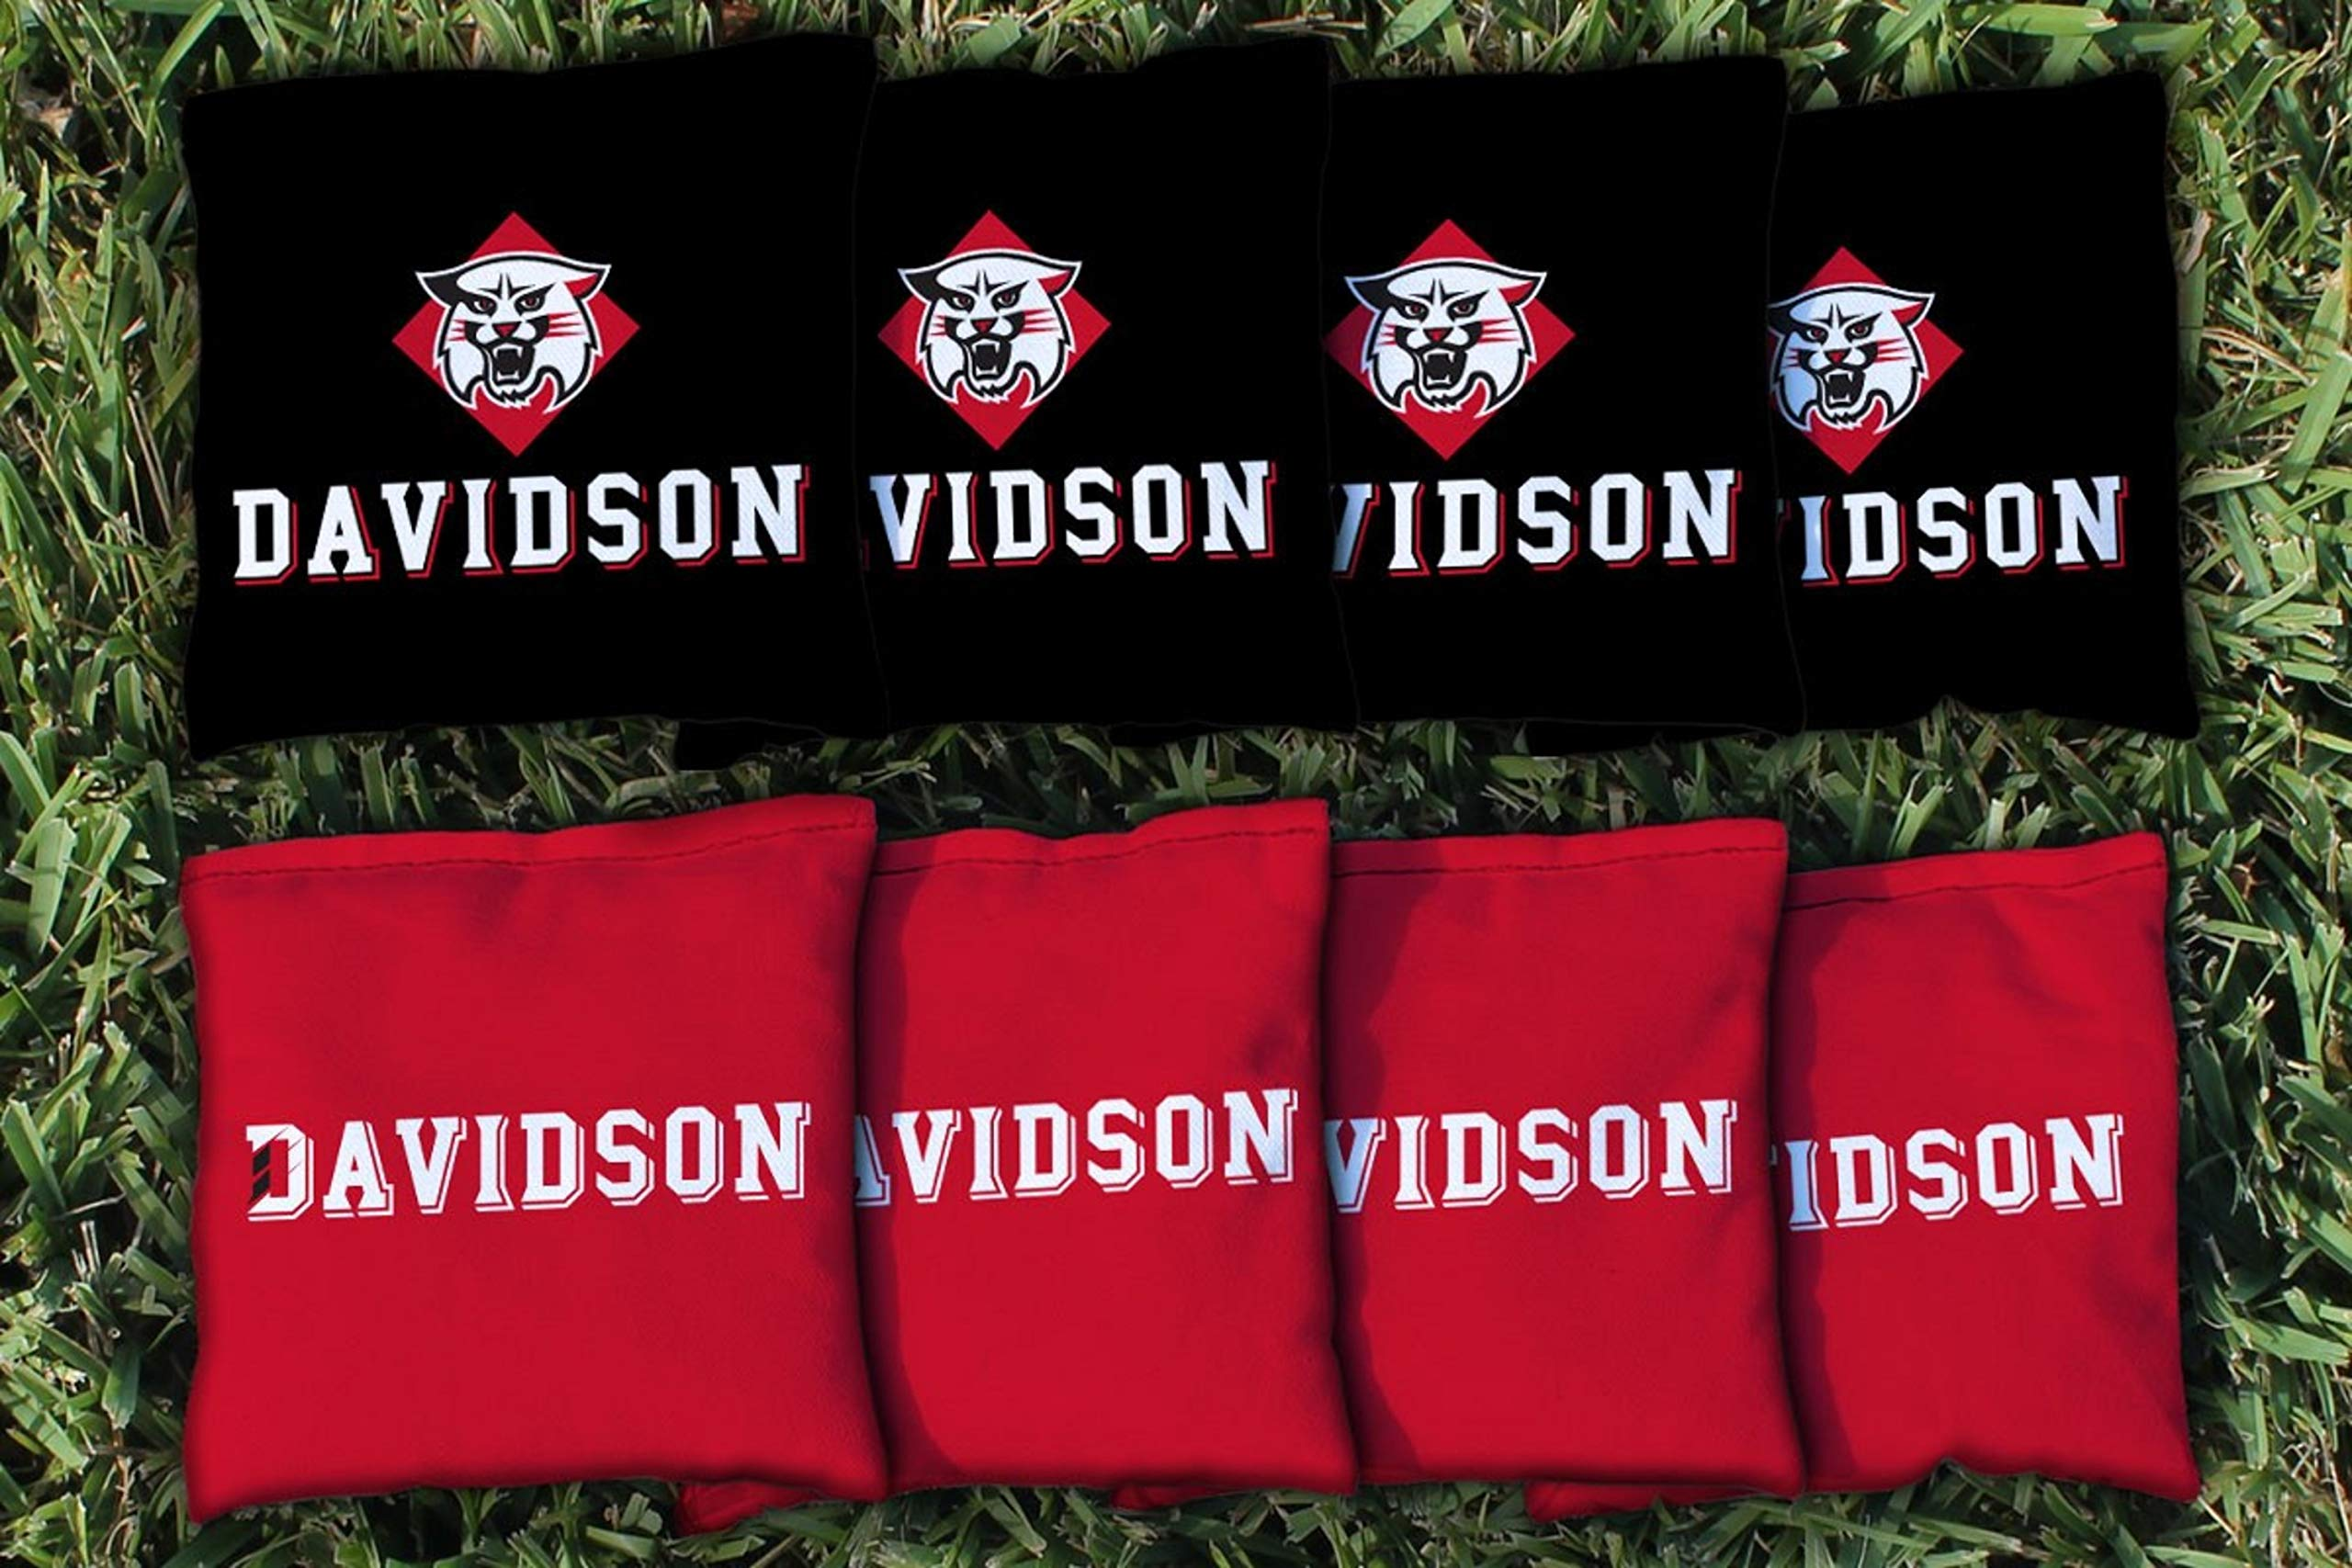 Victory Tailgate NCAA Collegiate Regulation Cornhole Game Bag Set (8 Bags Included, Corn-Filled) - Davidson Wildcats by Victory Tailgate